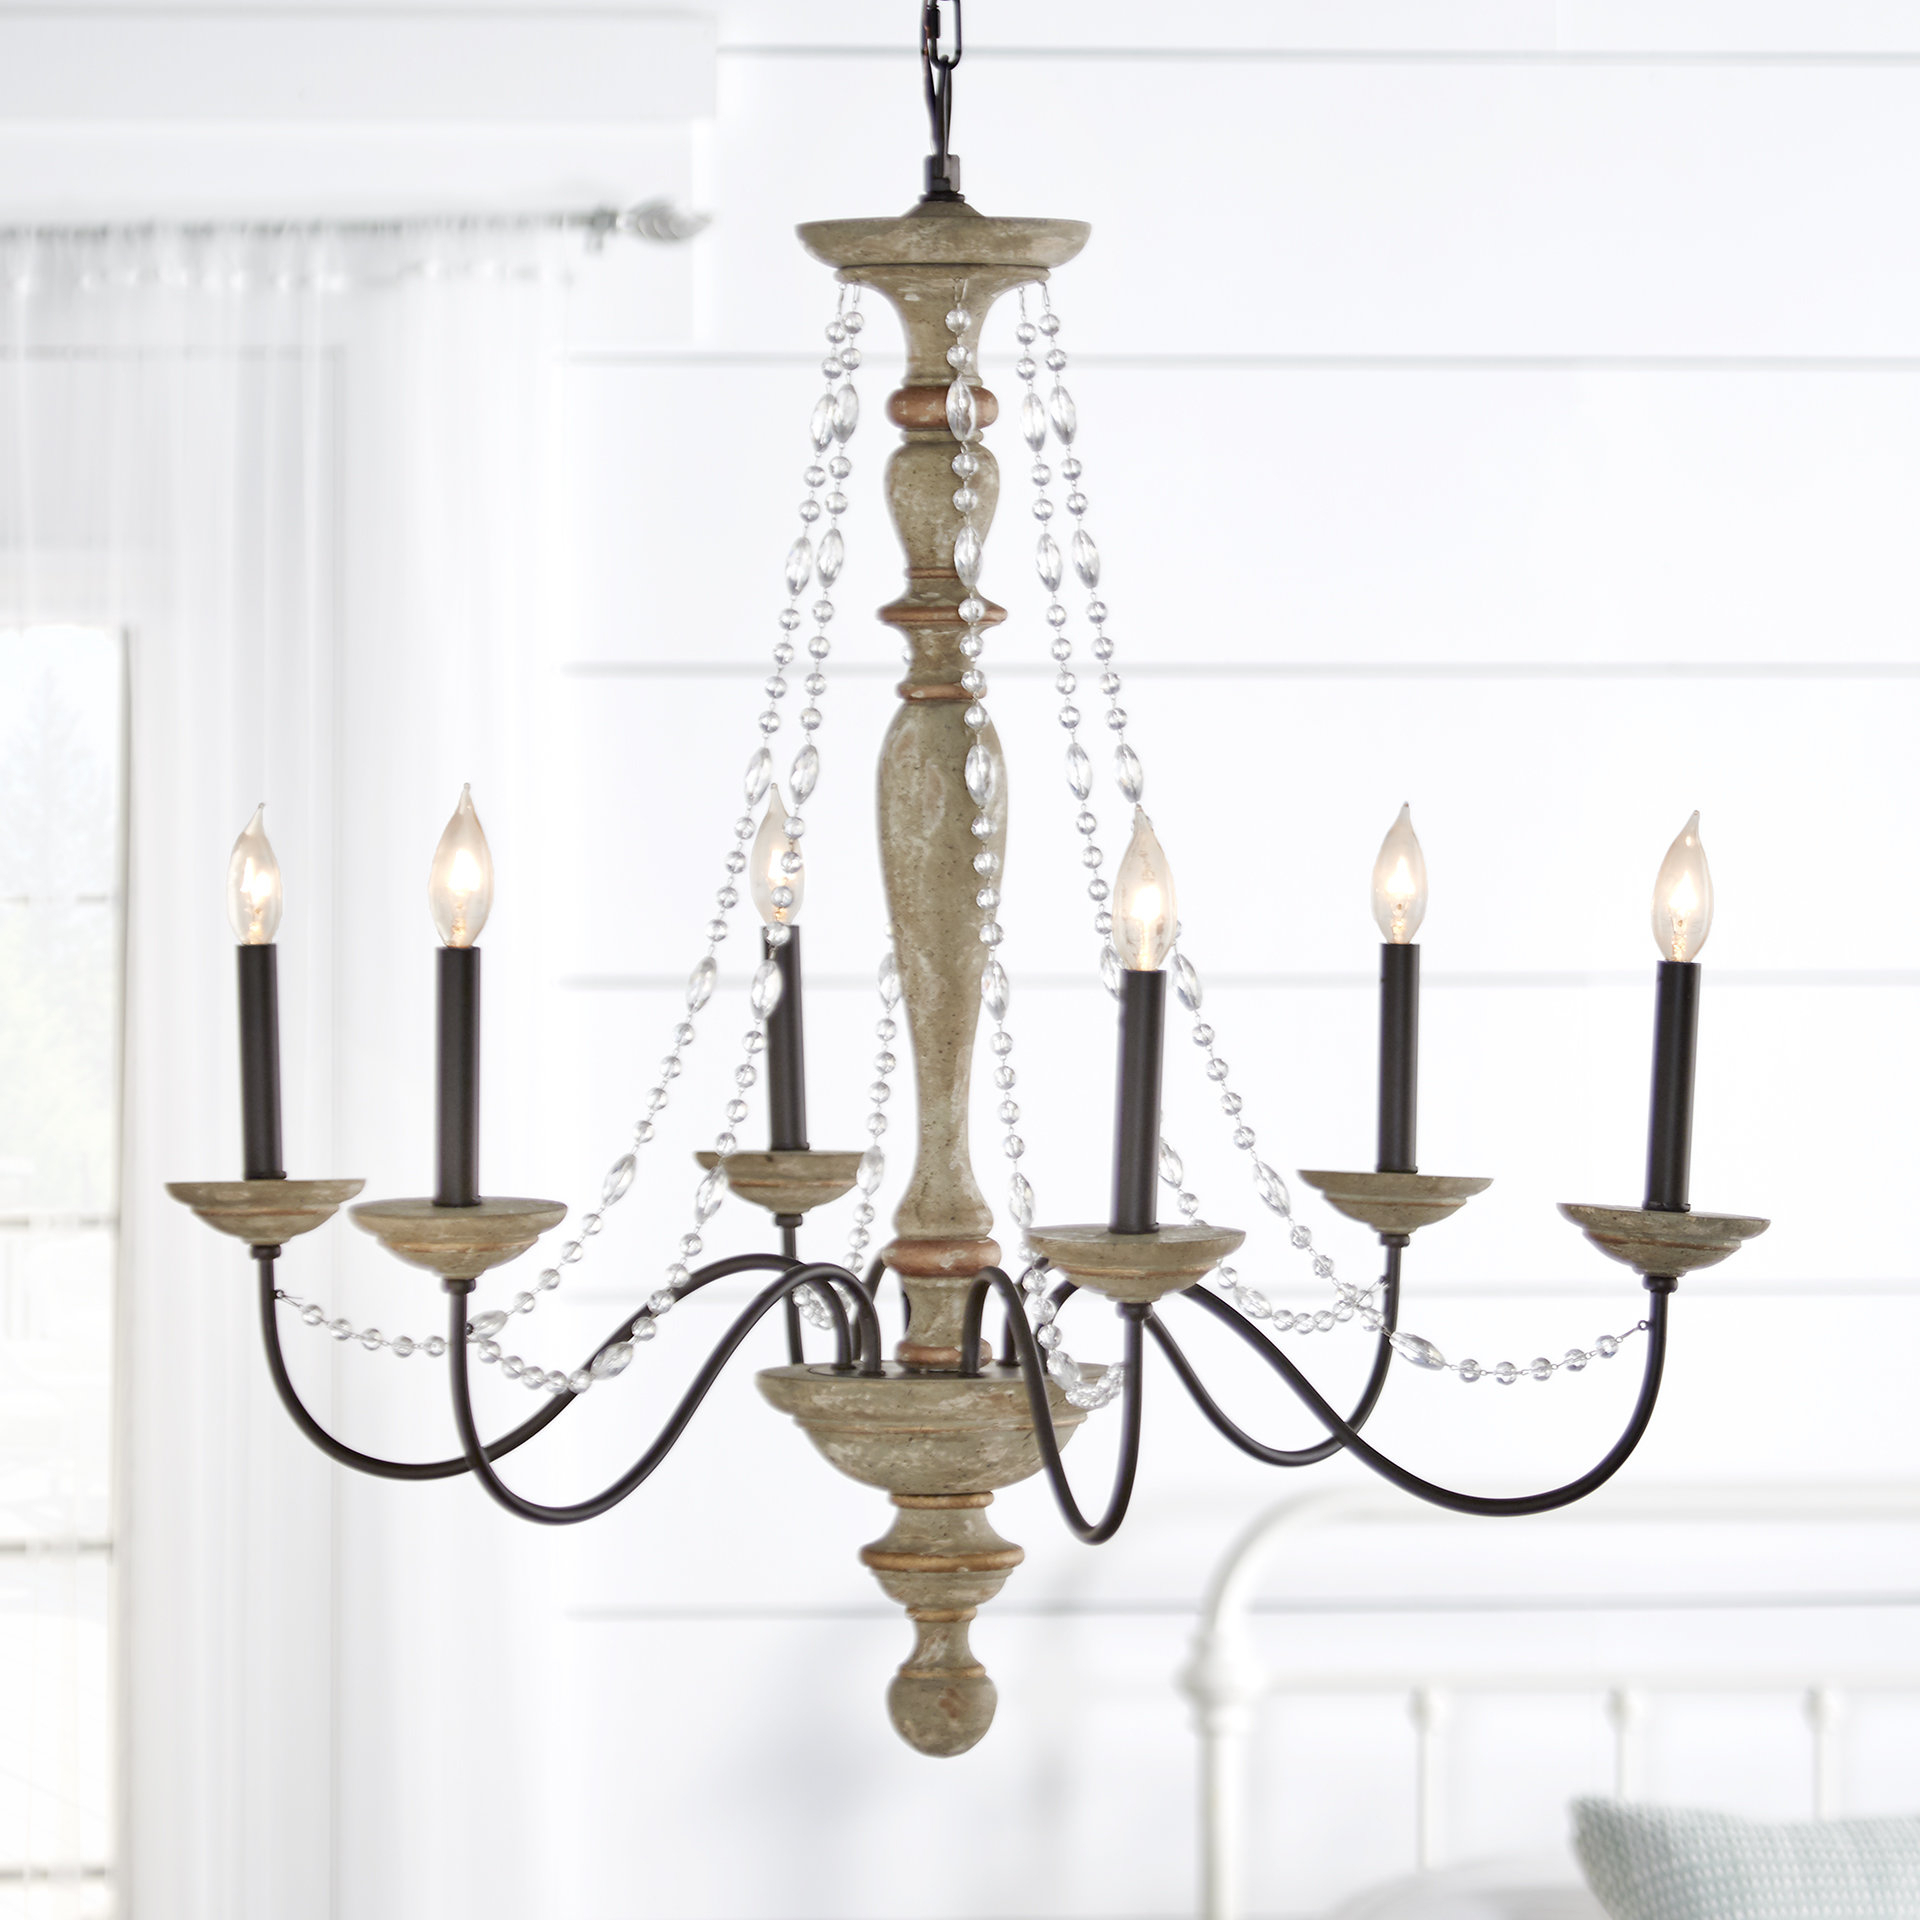 Latest Three Posts Brennon 6 Light Candle Style Chandelier Throughout Shaylee 5 Light Candle Style Chandeliers (View 6 of 25)